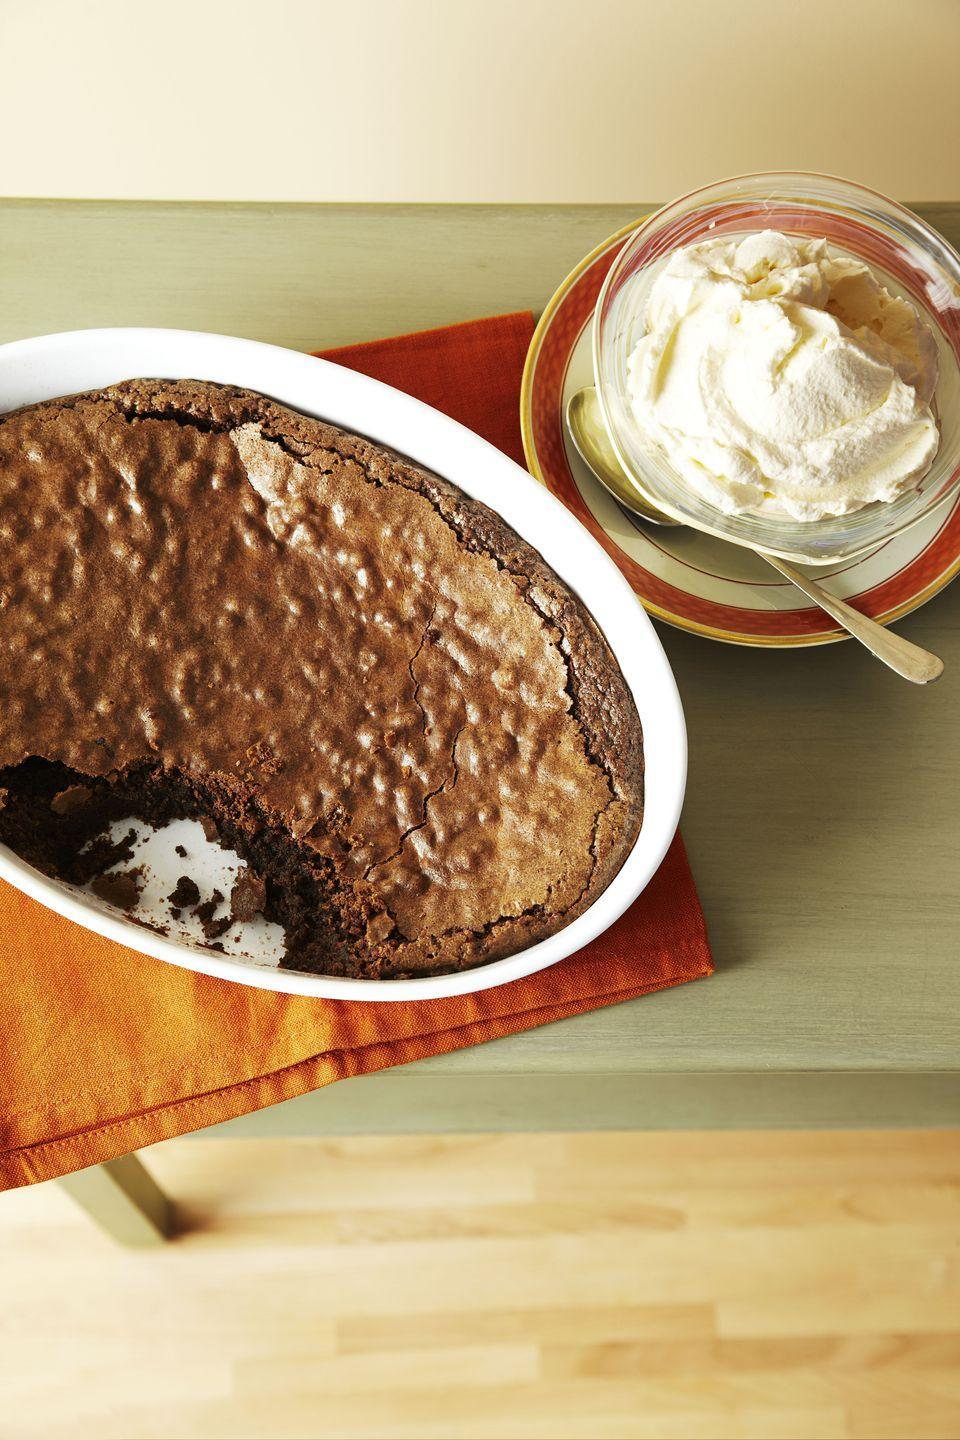 "<p>This one's for all the chocolate lovers: A splash of framboise liqueur adds an elegant touch to Thanksgiving night's dessert.</p><p><em><a href=""https://www.goodhousekeeping.com/food-recipes/a8707/baked-chocolate-pudding-recipe-ghk1111/"" rel=""nofollow noopener"" target=""_blank"" data-ylk=""slk:Get the recipe for Baked Chocolate Pudding »"" class=""link rapid-noclick-resp"">Get the recipe for Baked Chocolate Pudding »</a></em></p>"